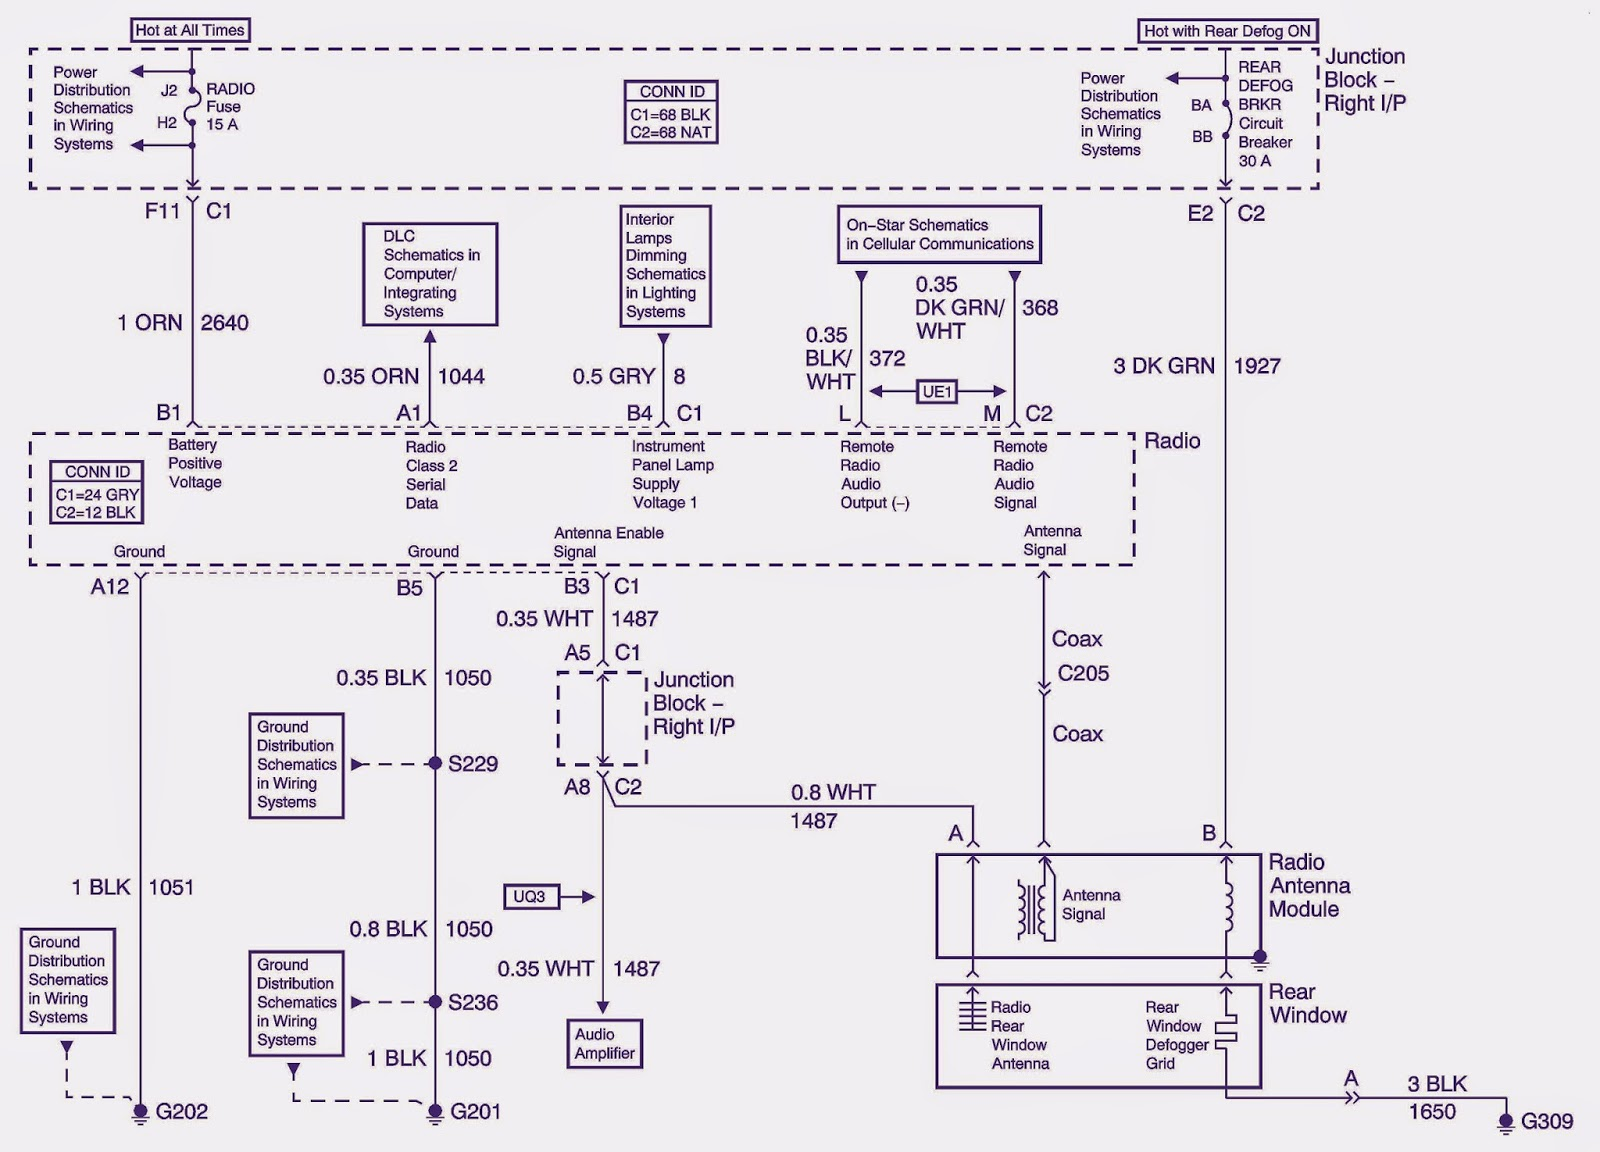 2004 Monte Carlo Wiring Diagram from 4.bp.blogspot.com